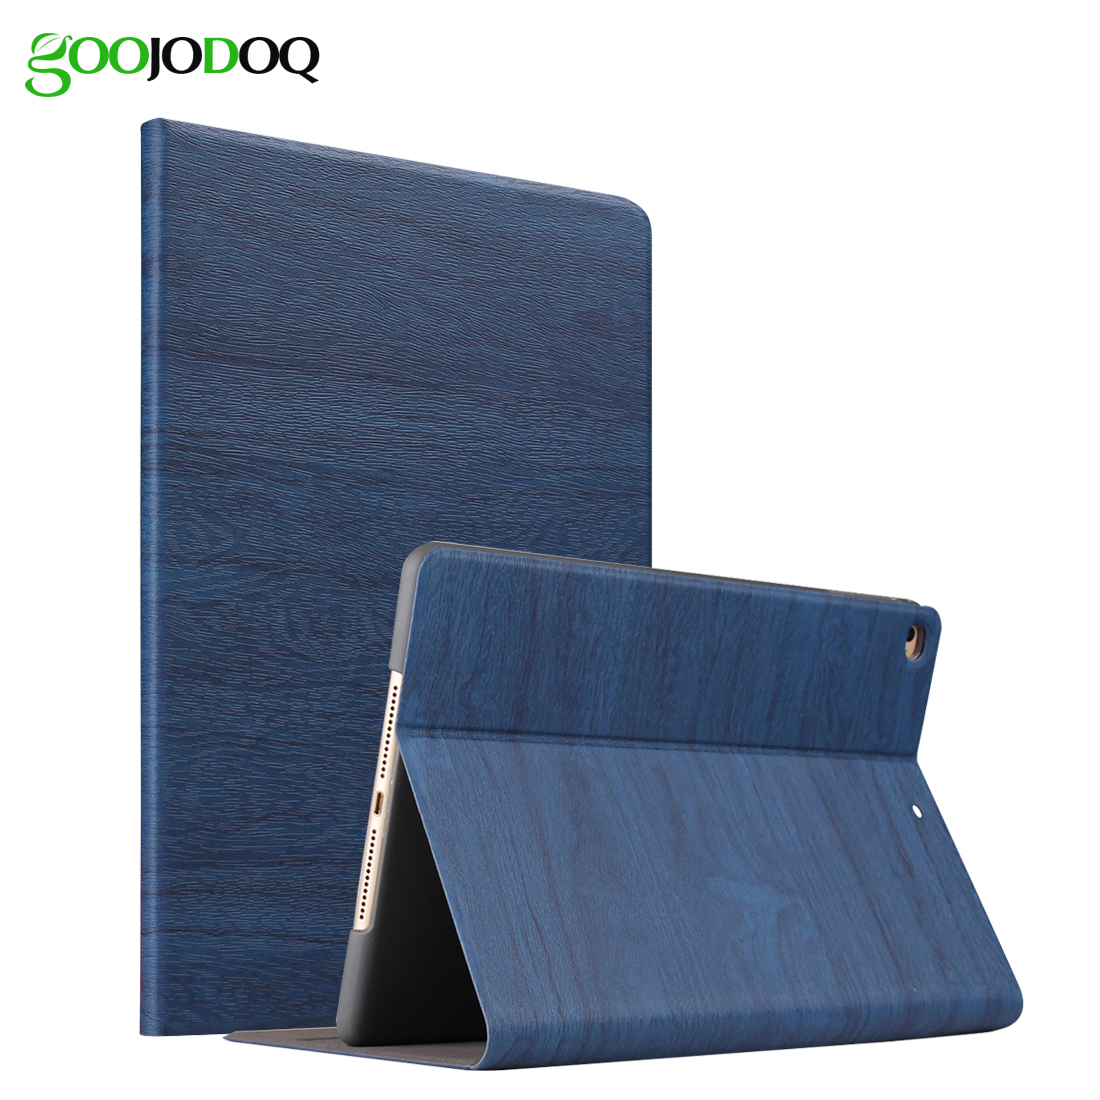 For iPad Air 2 Air 1 Case Retro Magnetic PU Leather Smart Cover Folio Stand Auto